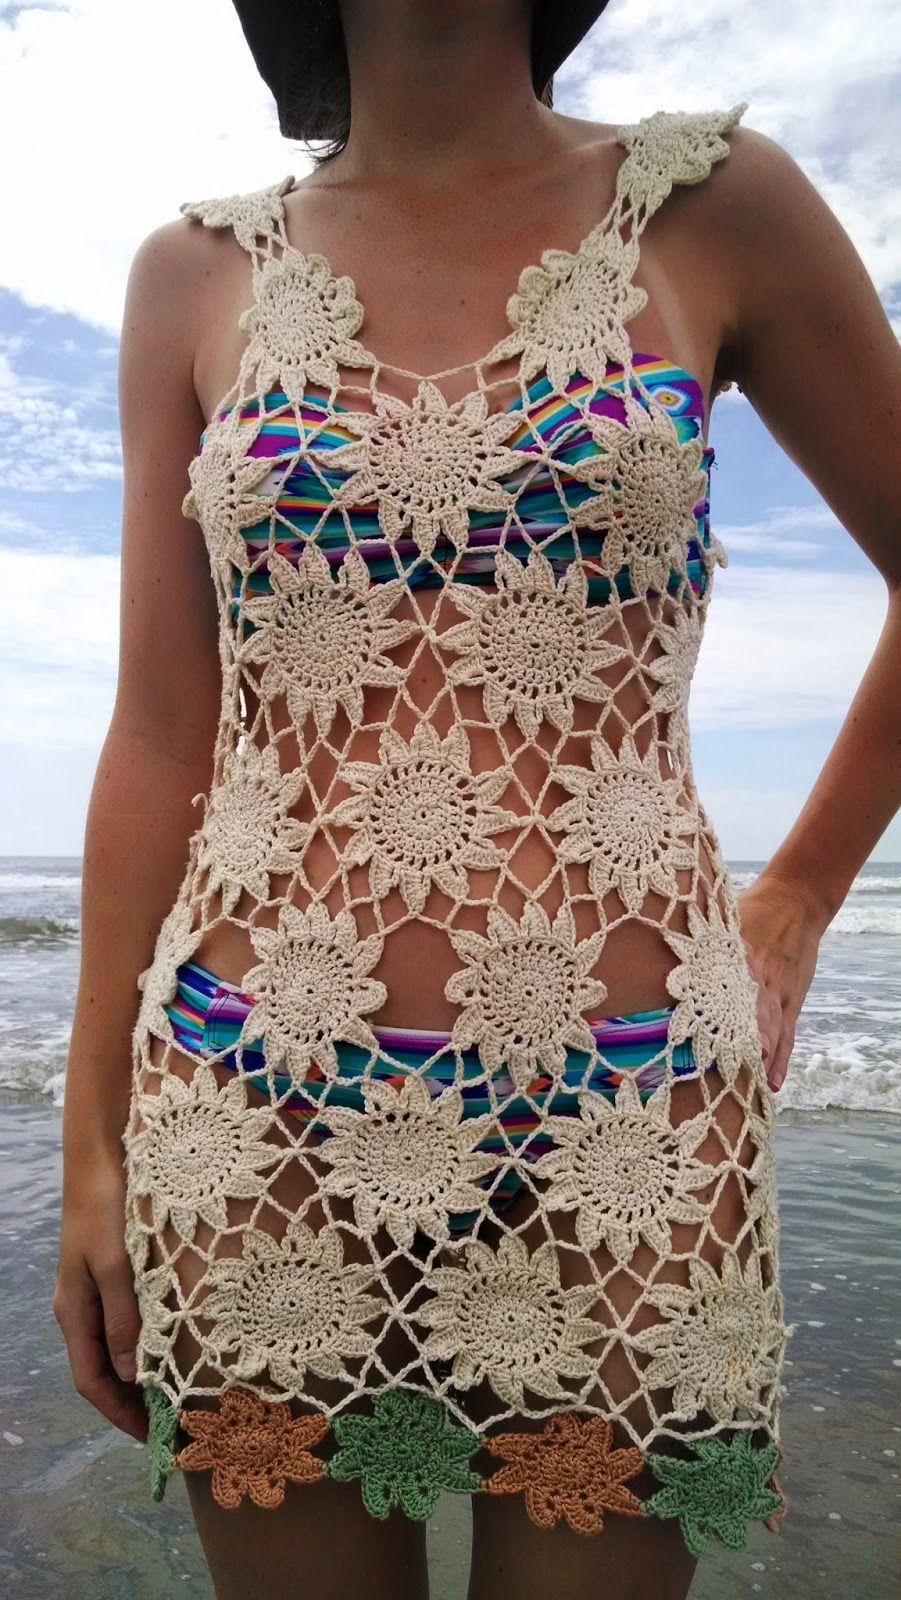 Crochet+Beach+Cover+Up+Pattern | This crochet beach cover up is ...